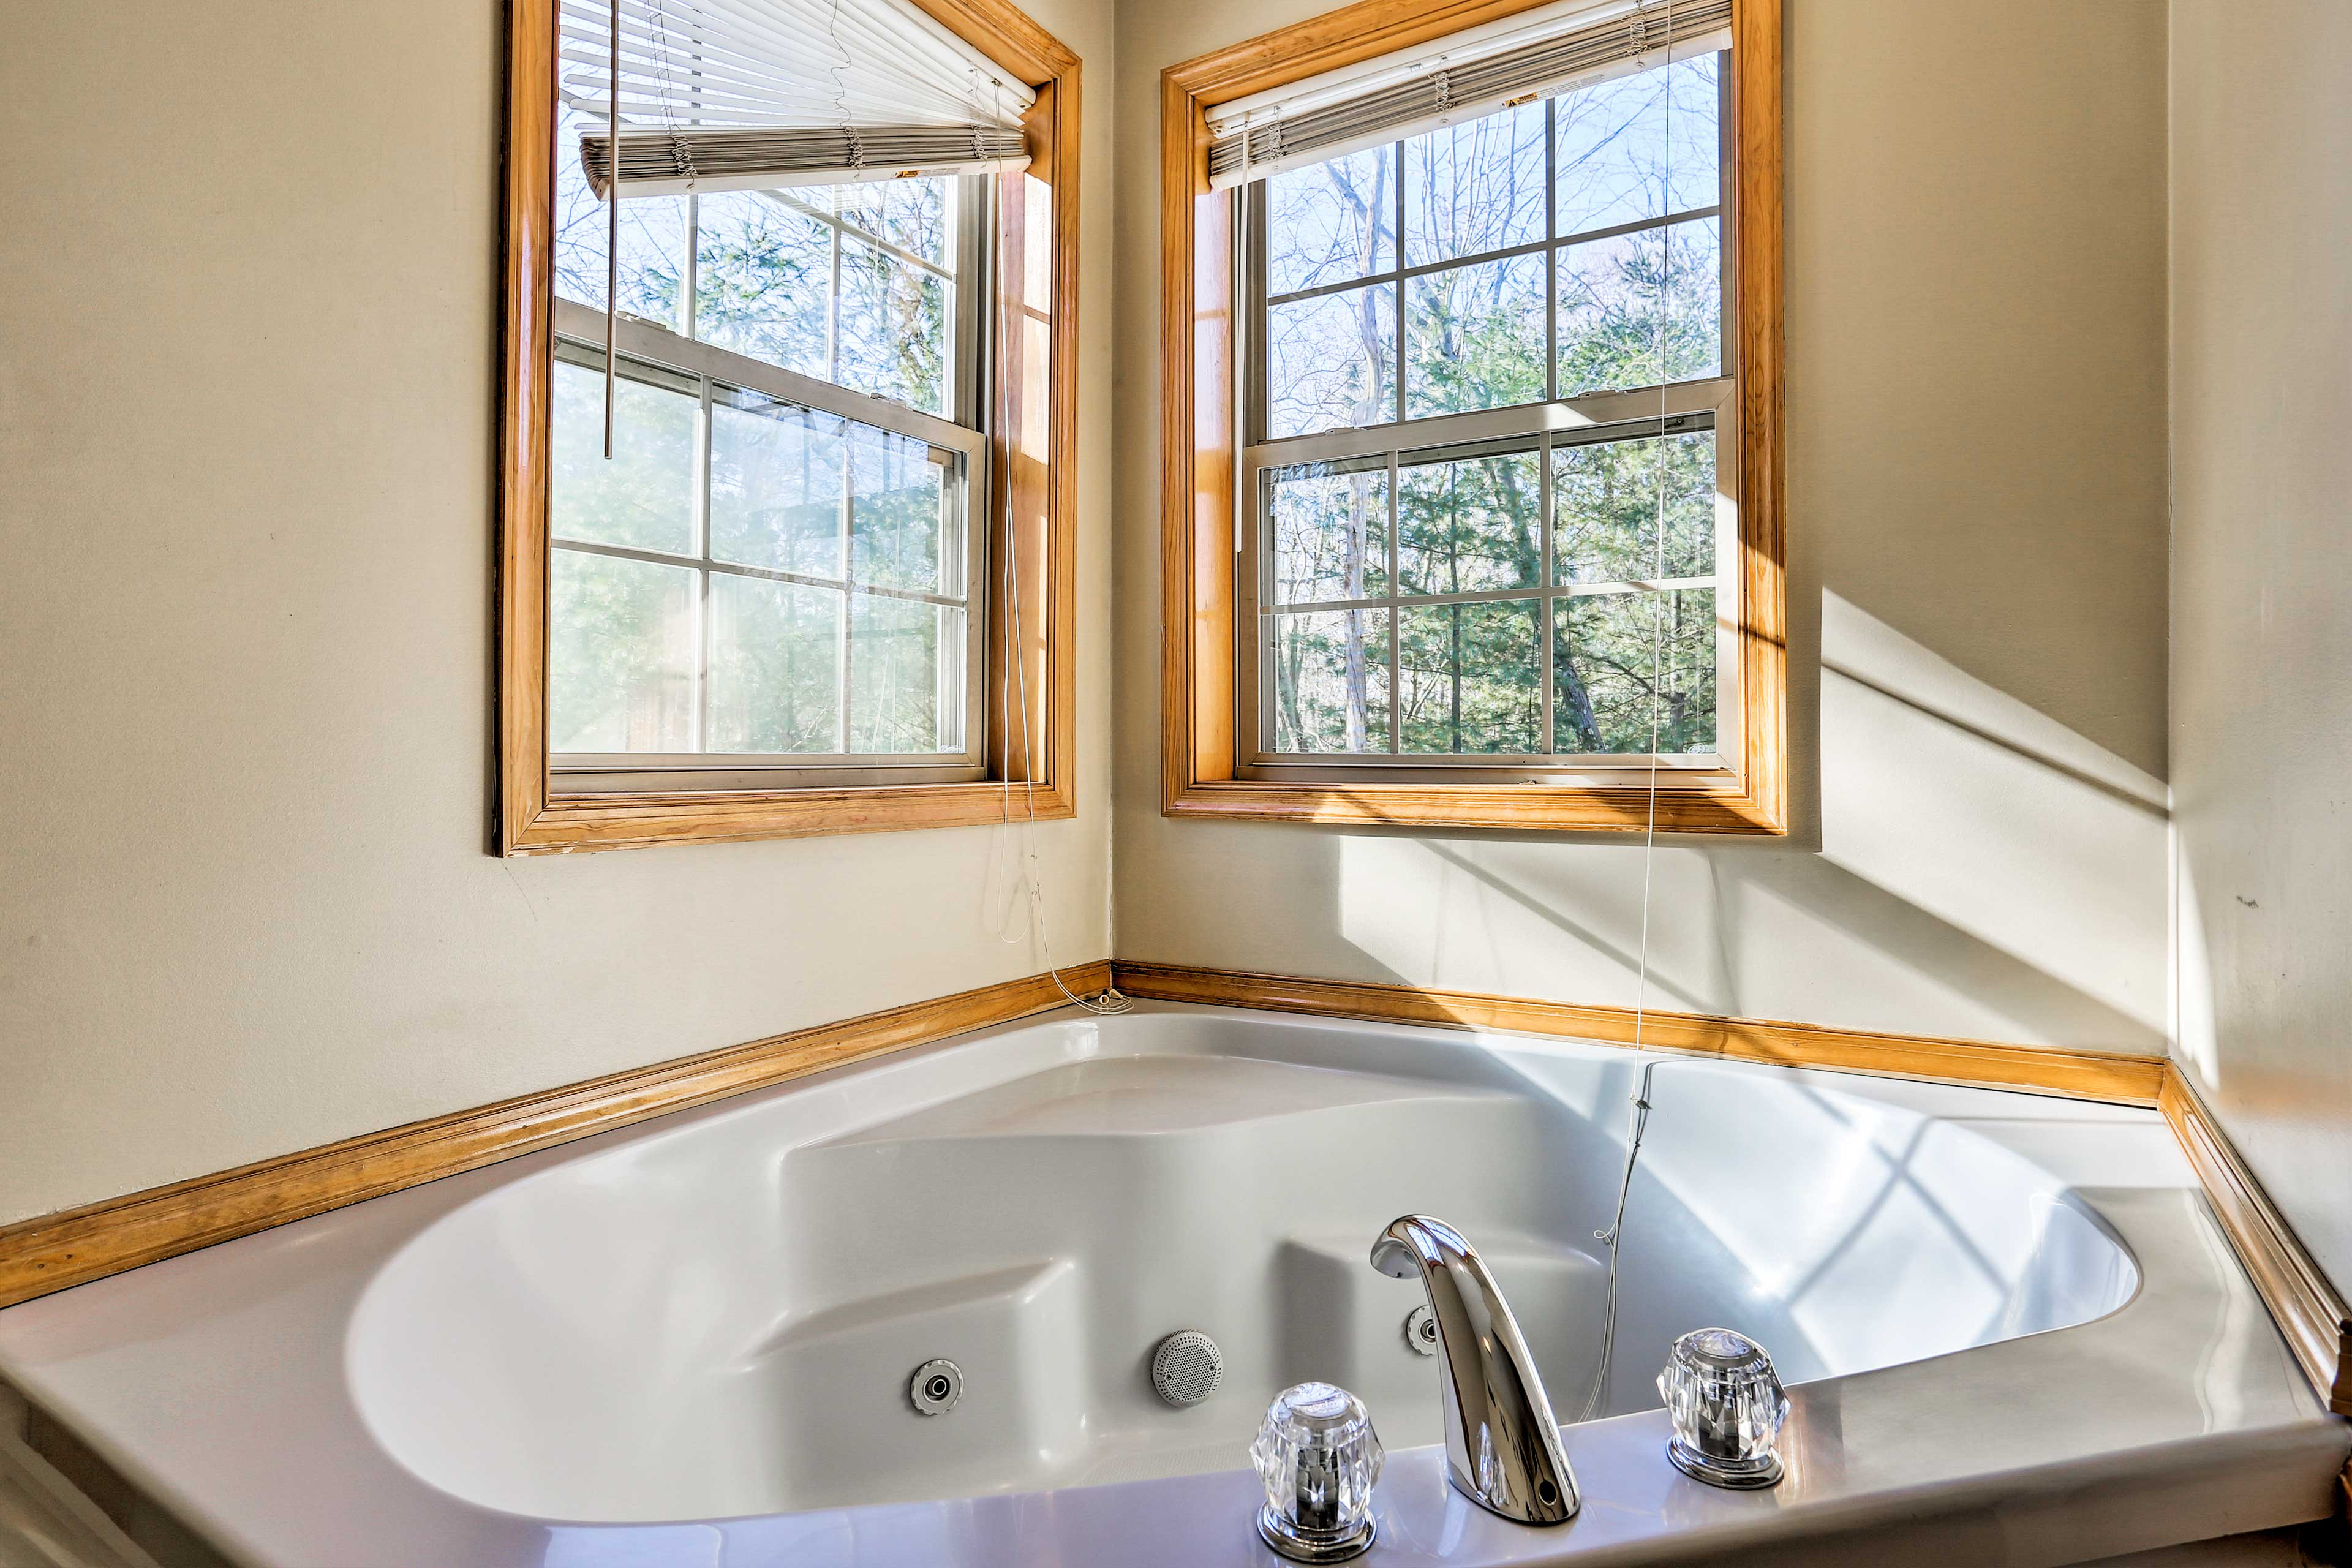 Take a warm bath in the master bedroom.